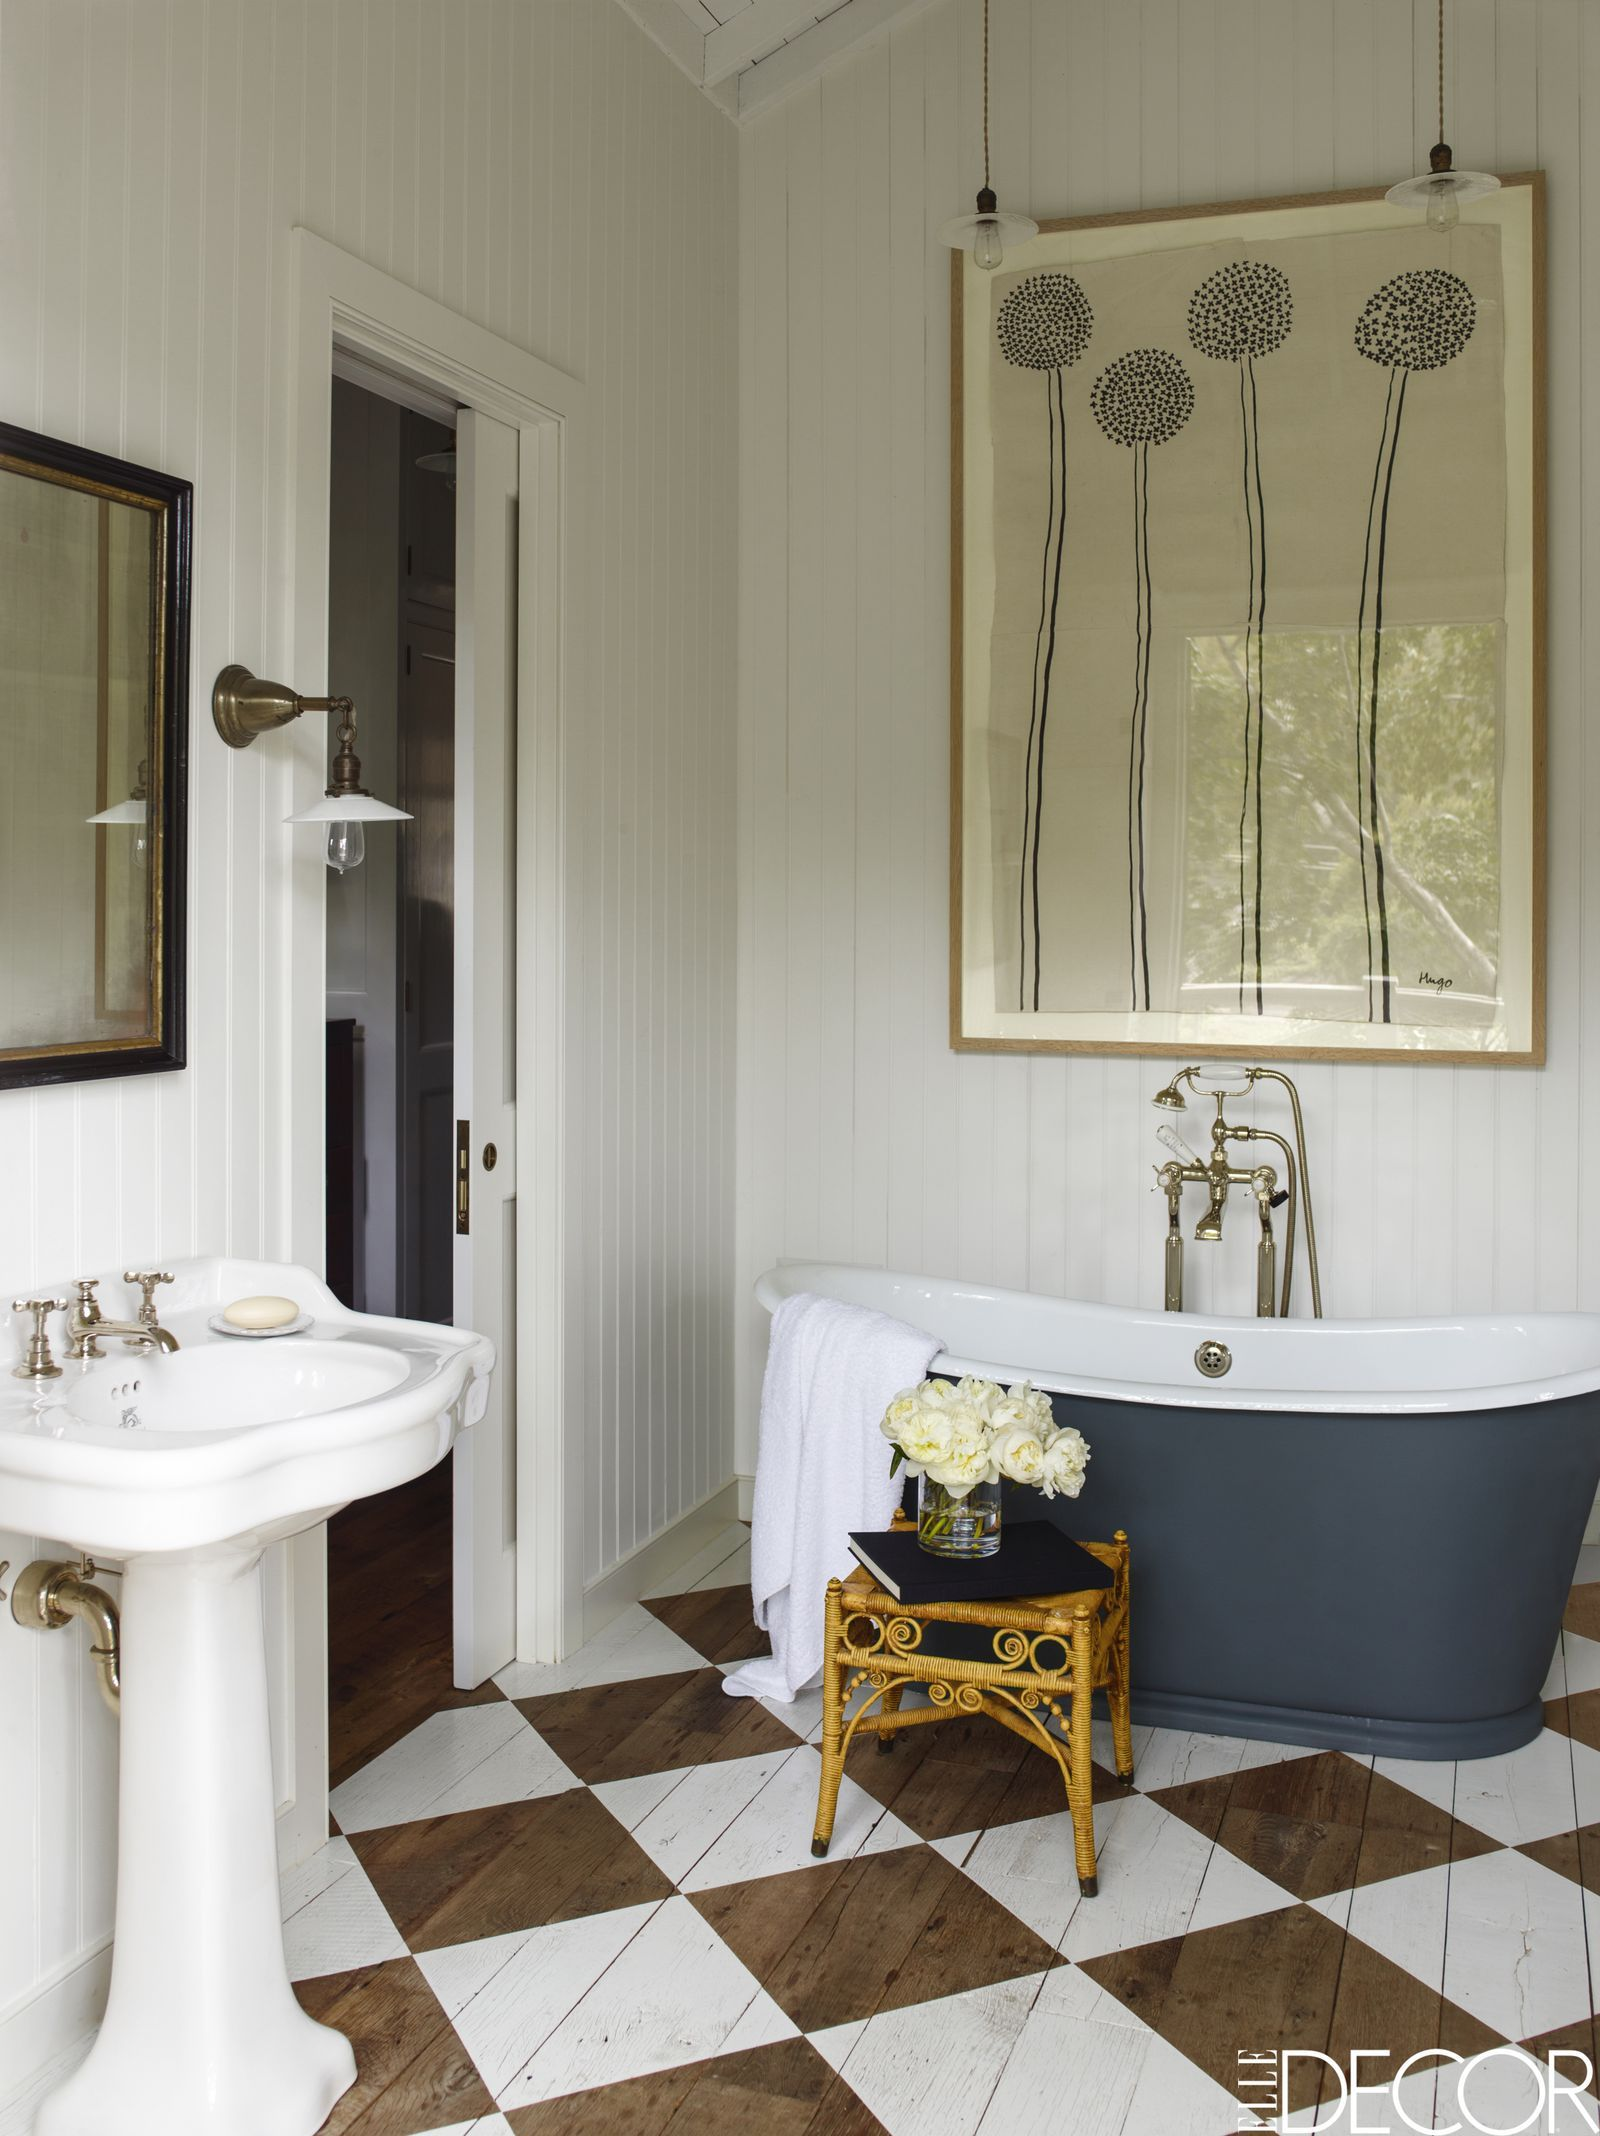 house tour: an abandoned summer camp becomes an eclectic family home | rustic bathroom decor